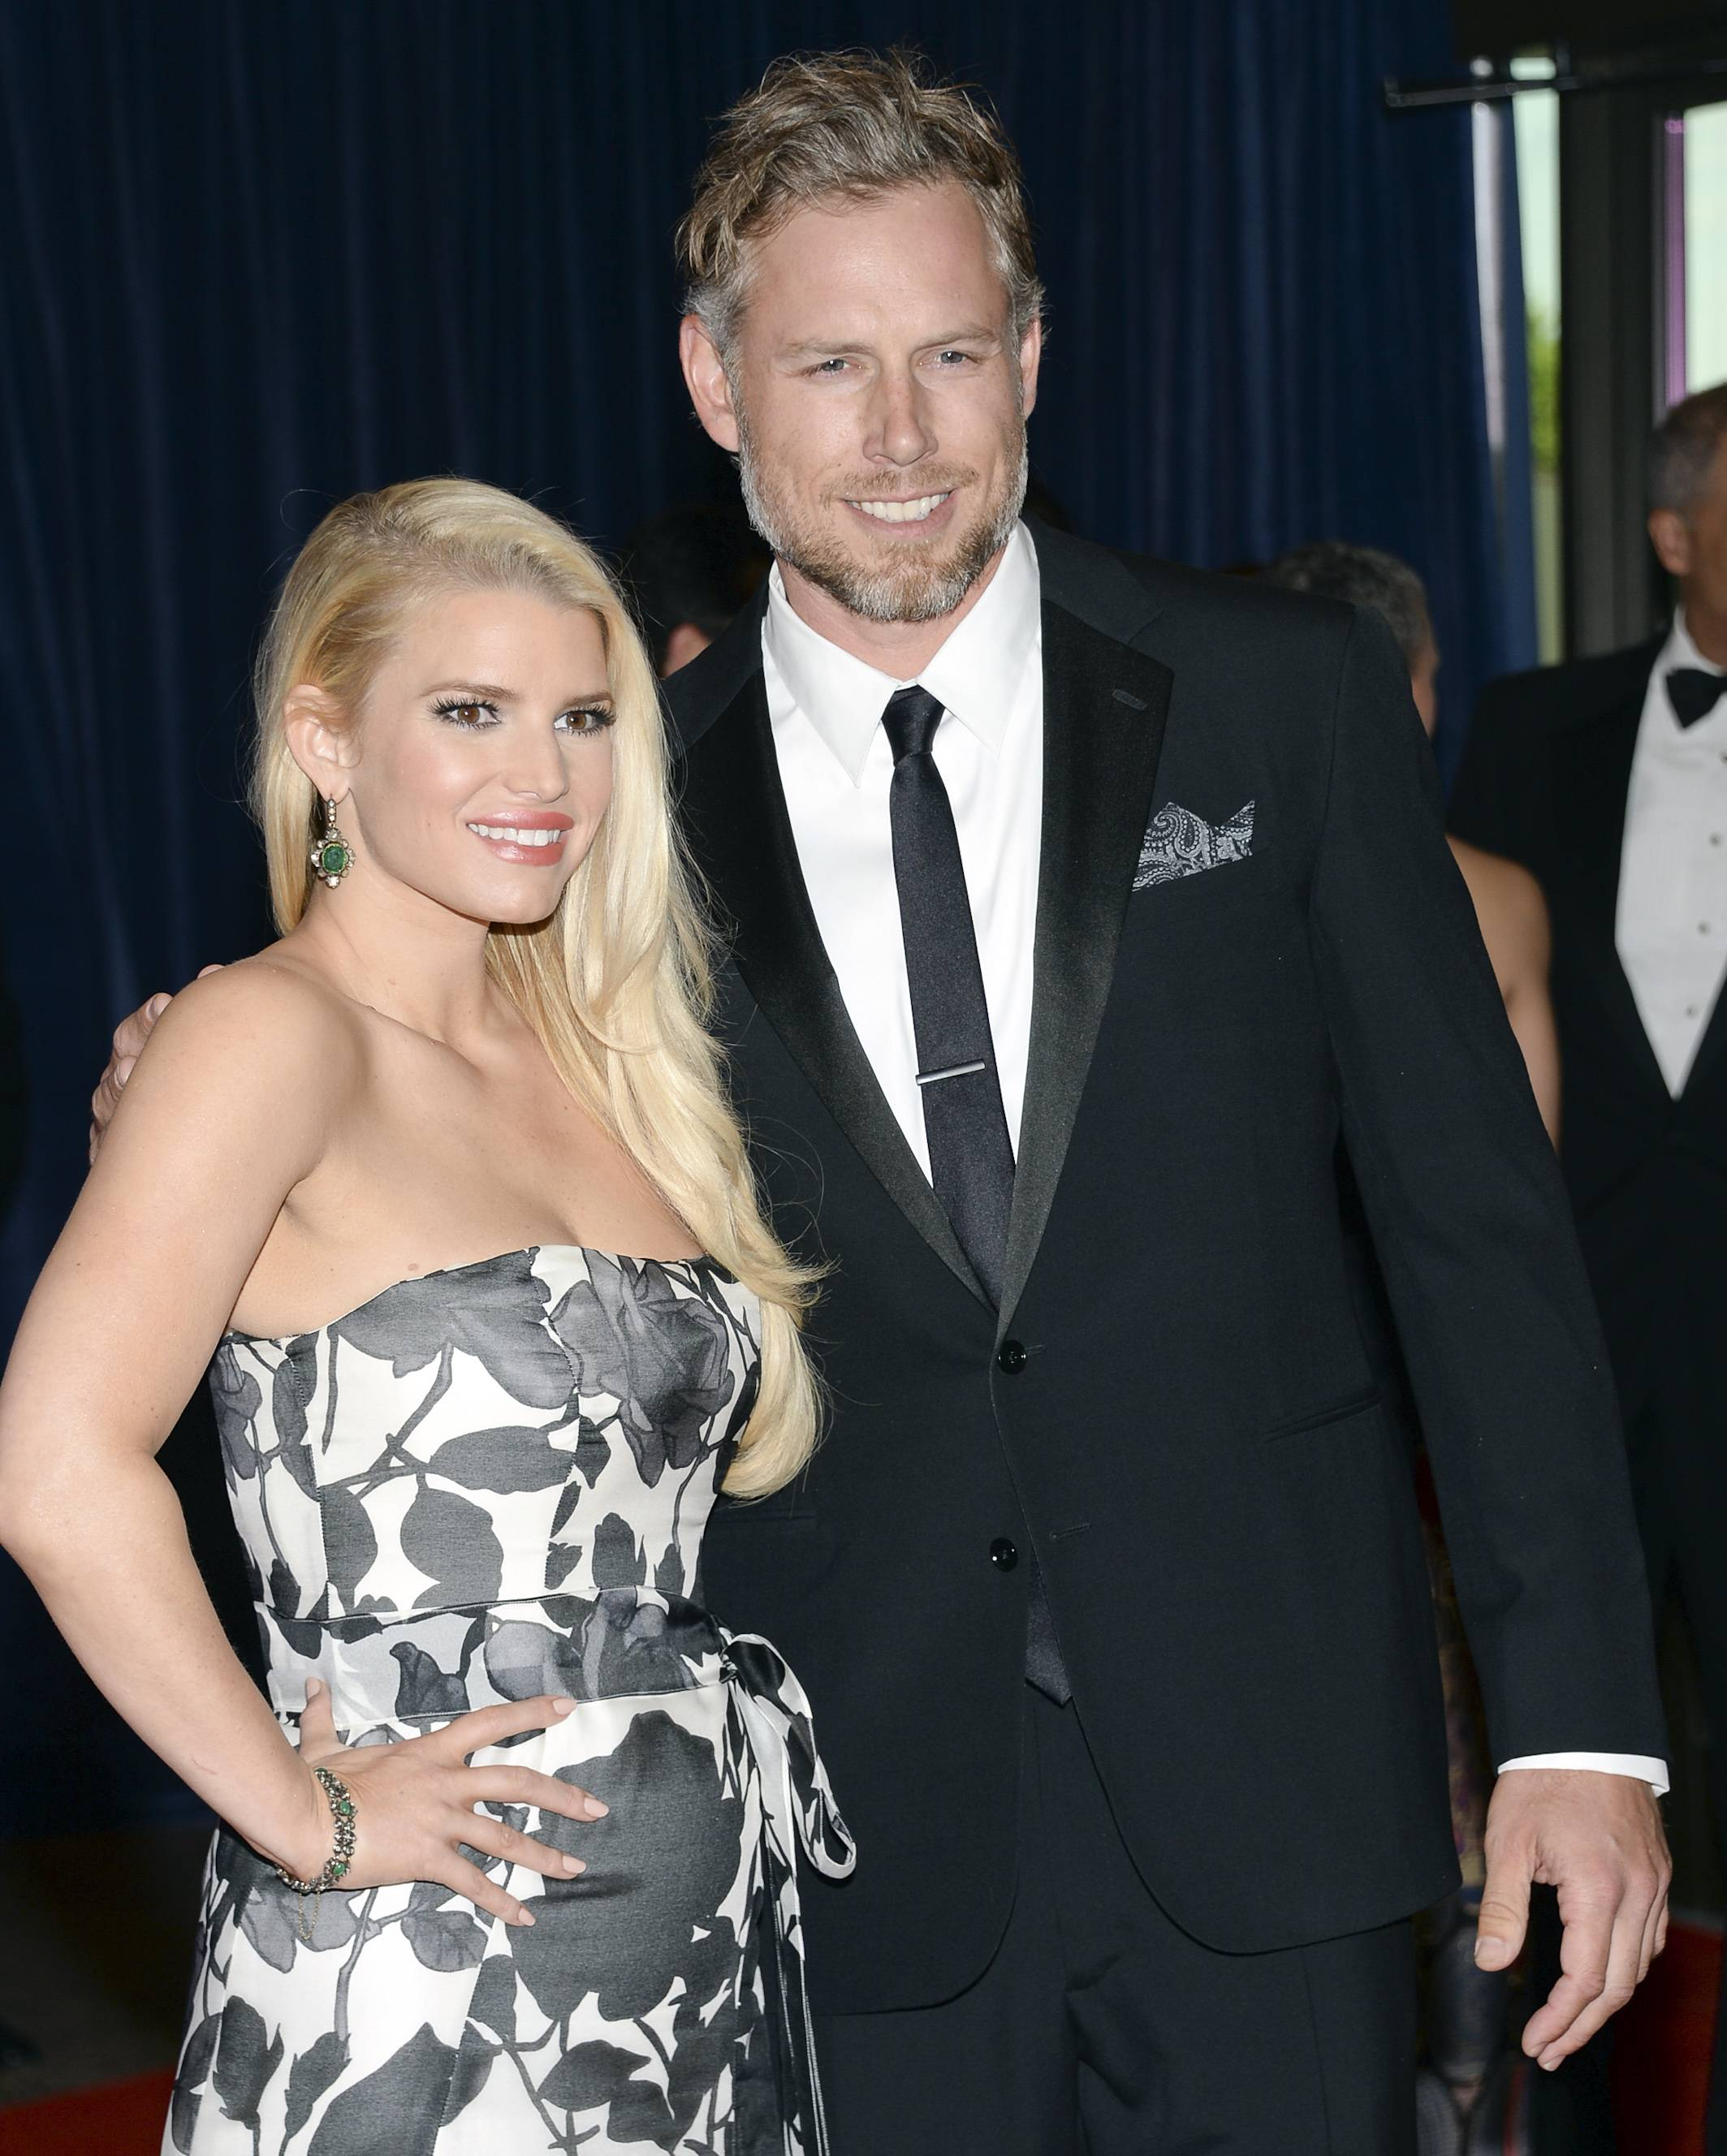 Jessica Simpson and Eric Johnson married Saturday at San Ysidro Ranch in Montecito, Calif., her publicist Lauren Auslander confirms.